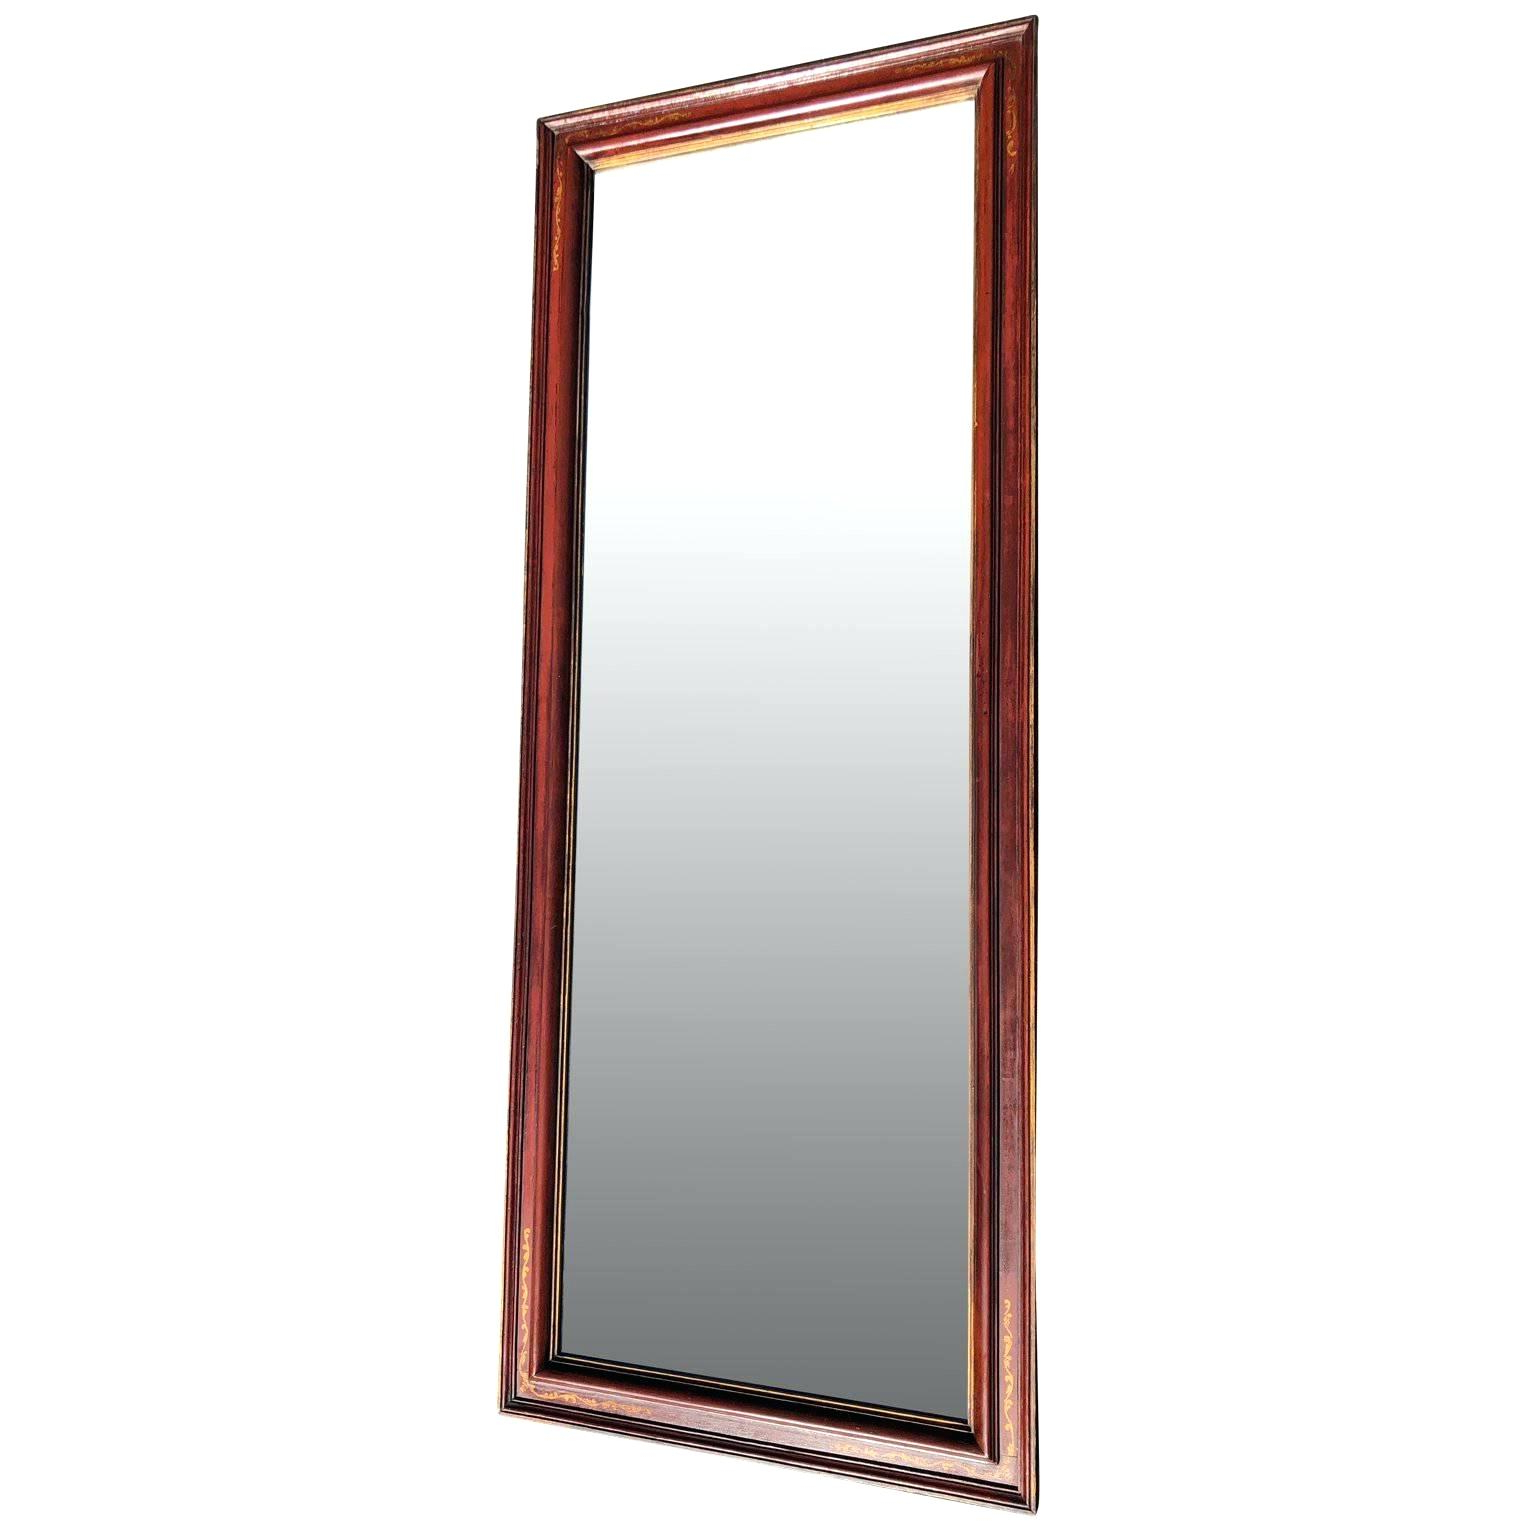 2019 Remarkable Large Glass Bevelled Wall Mirror Modern Art Deco Within Large Beveled Wall Mirrors (View 1 of 20)